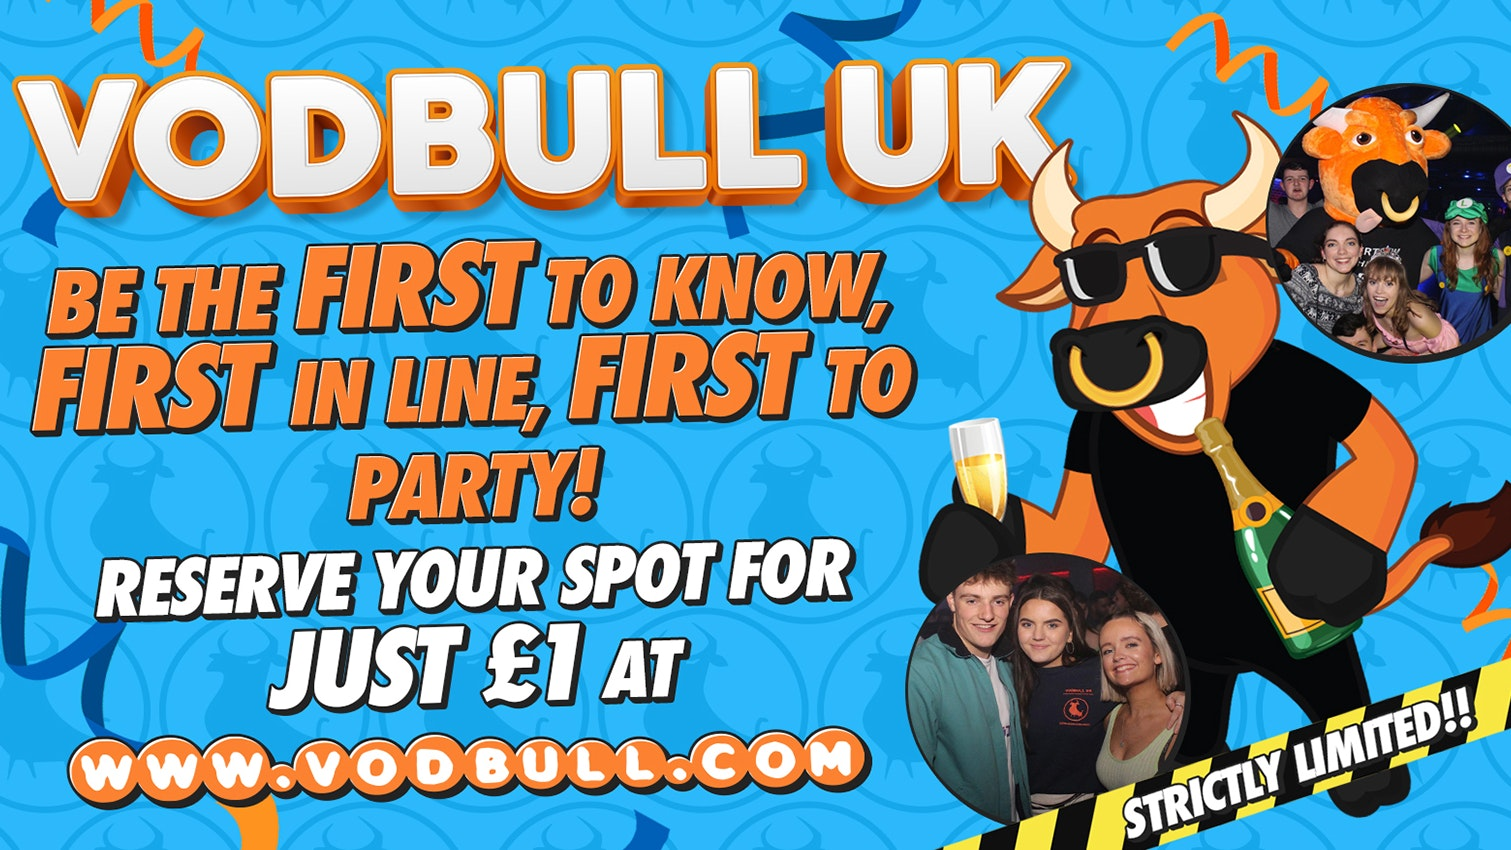 Be the First to know, First in line, First to Party at VODBULL!!